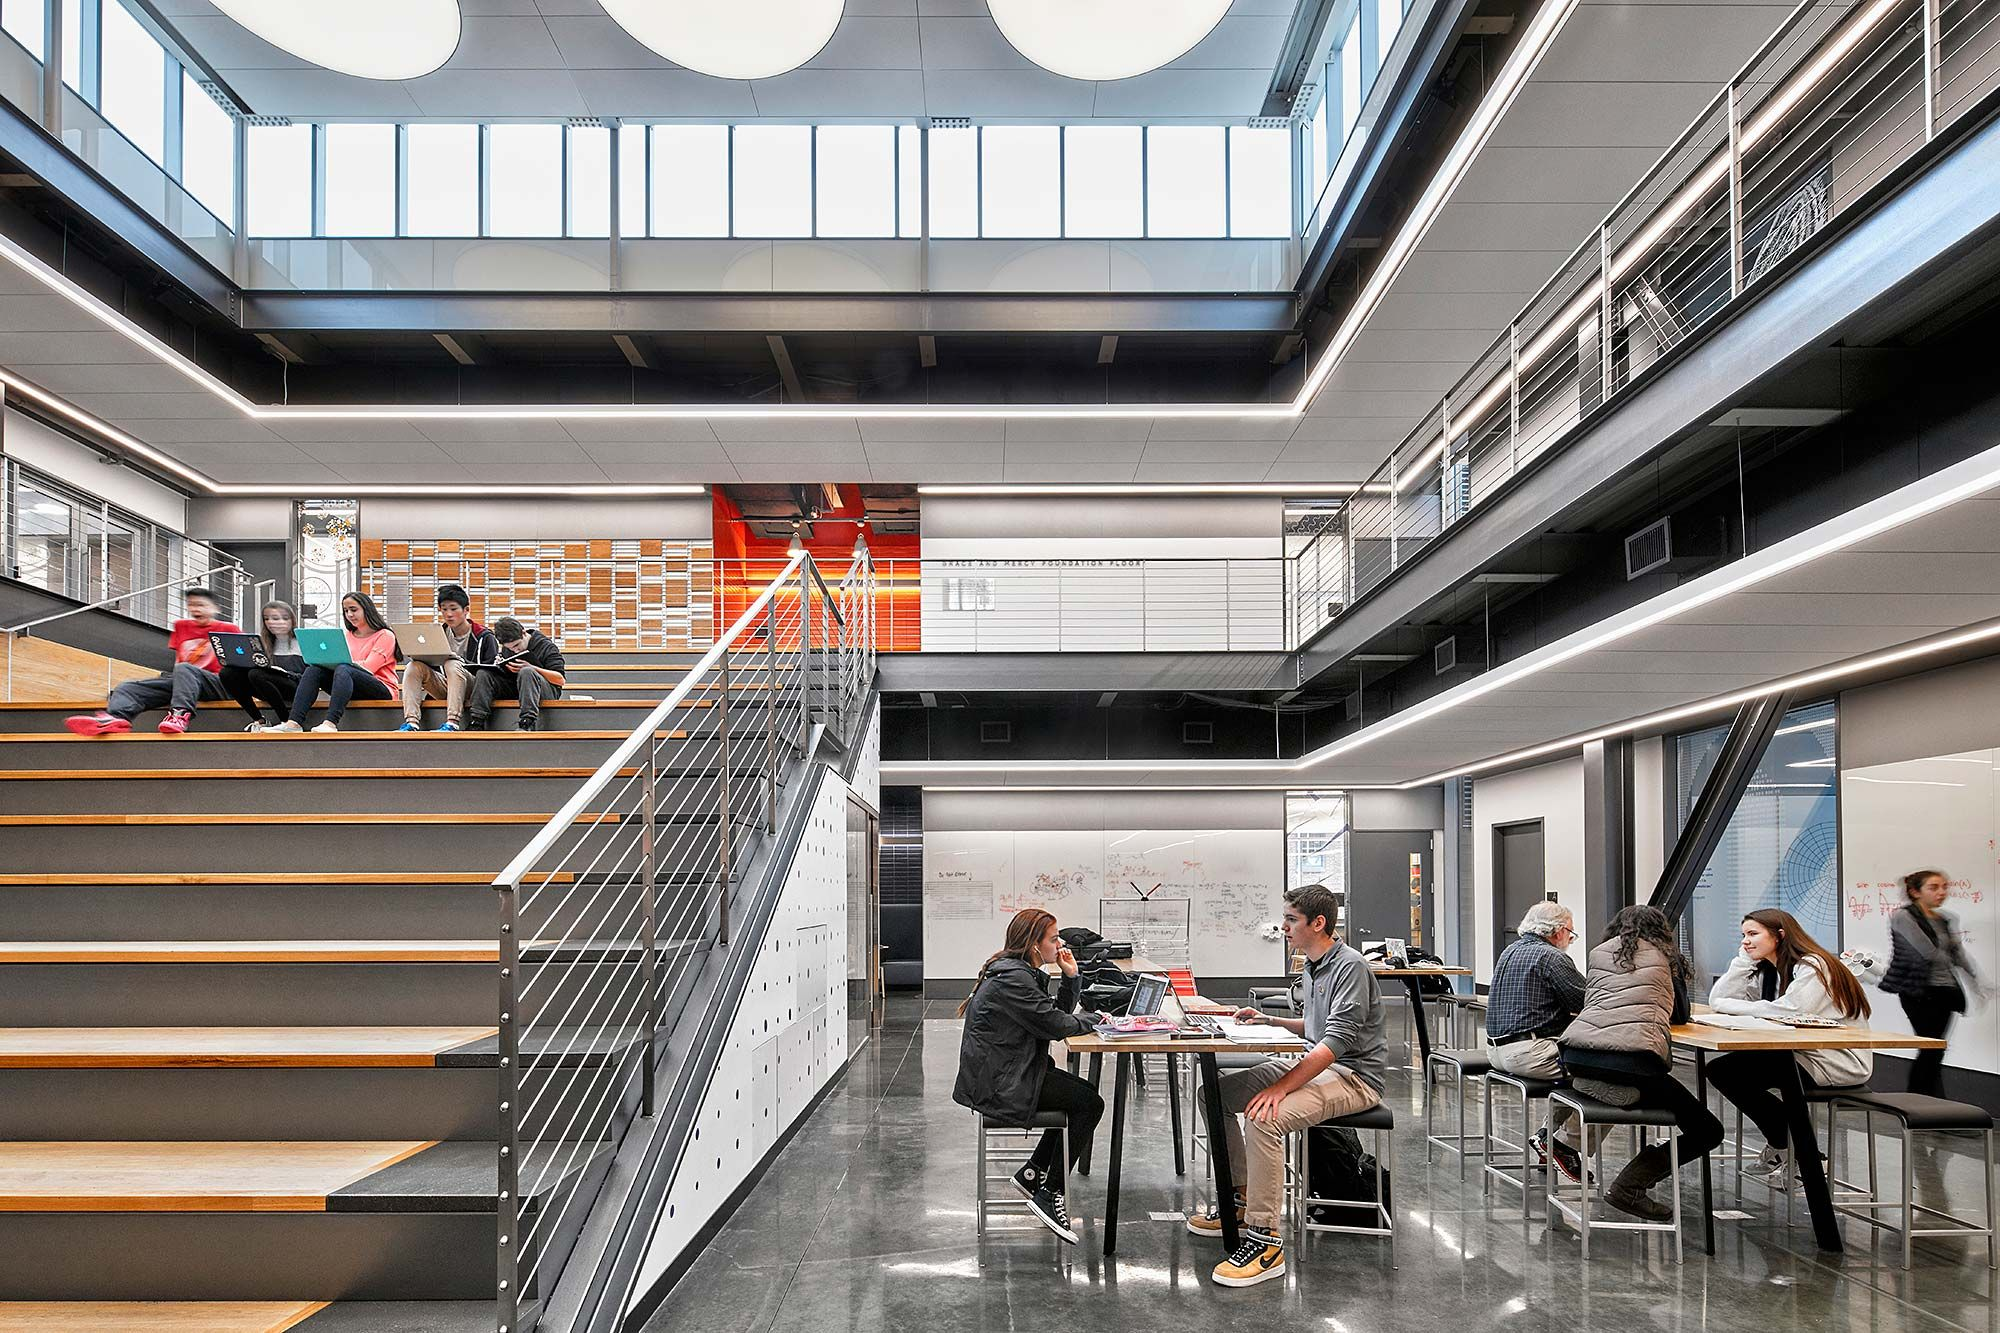 This new building at DwightEnglewood embodies the schools STEM